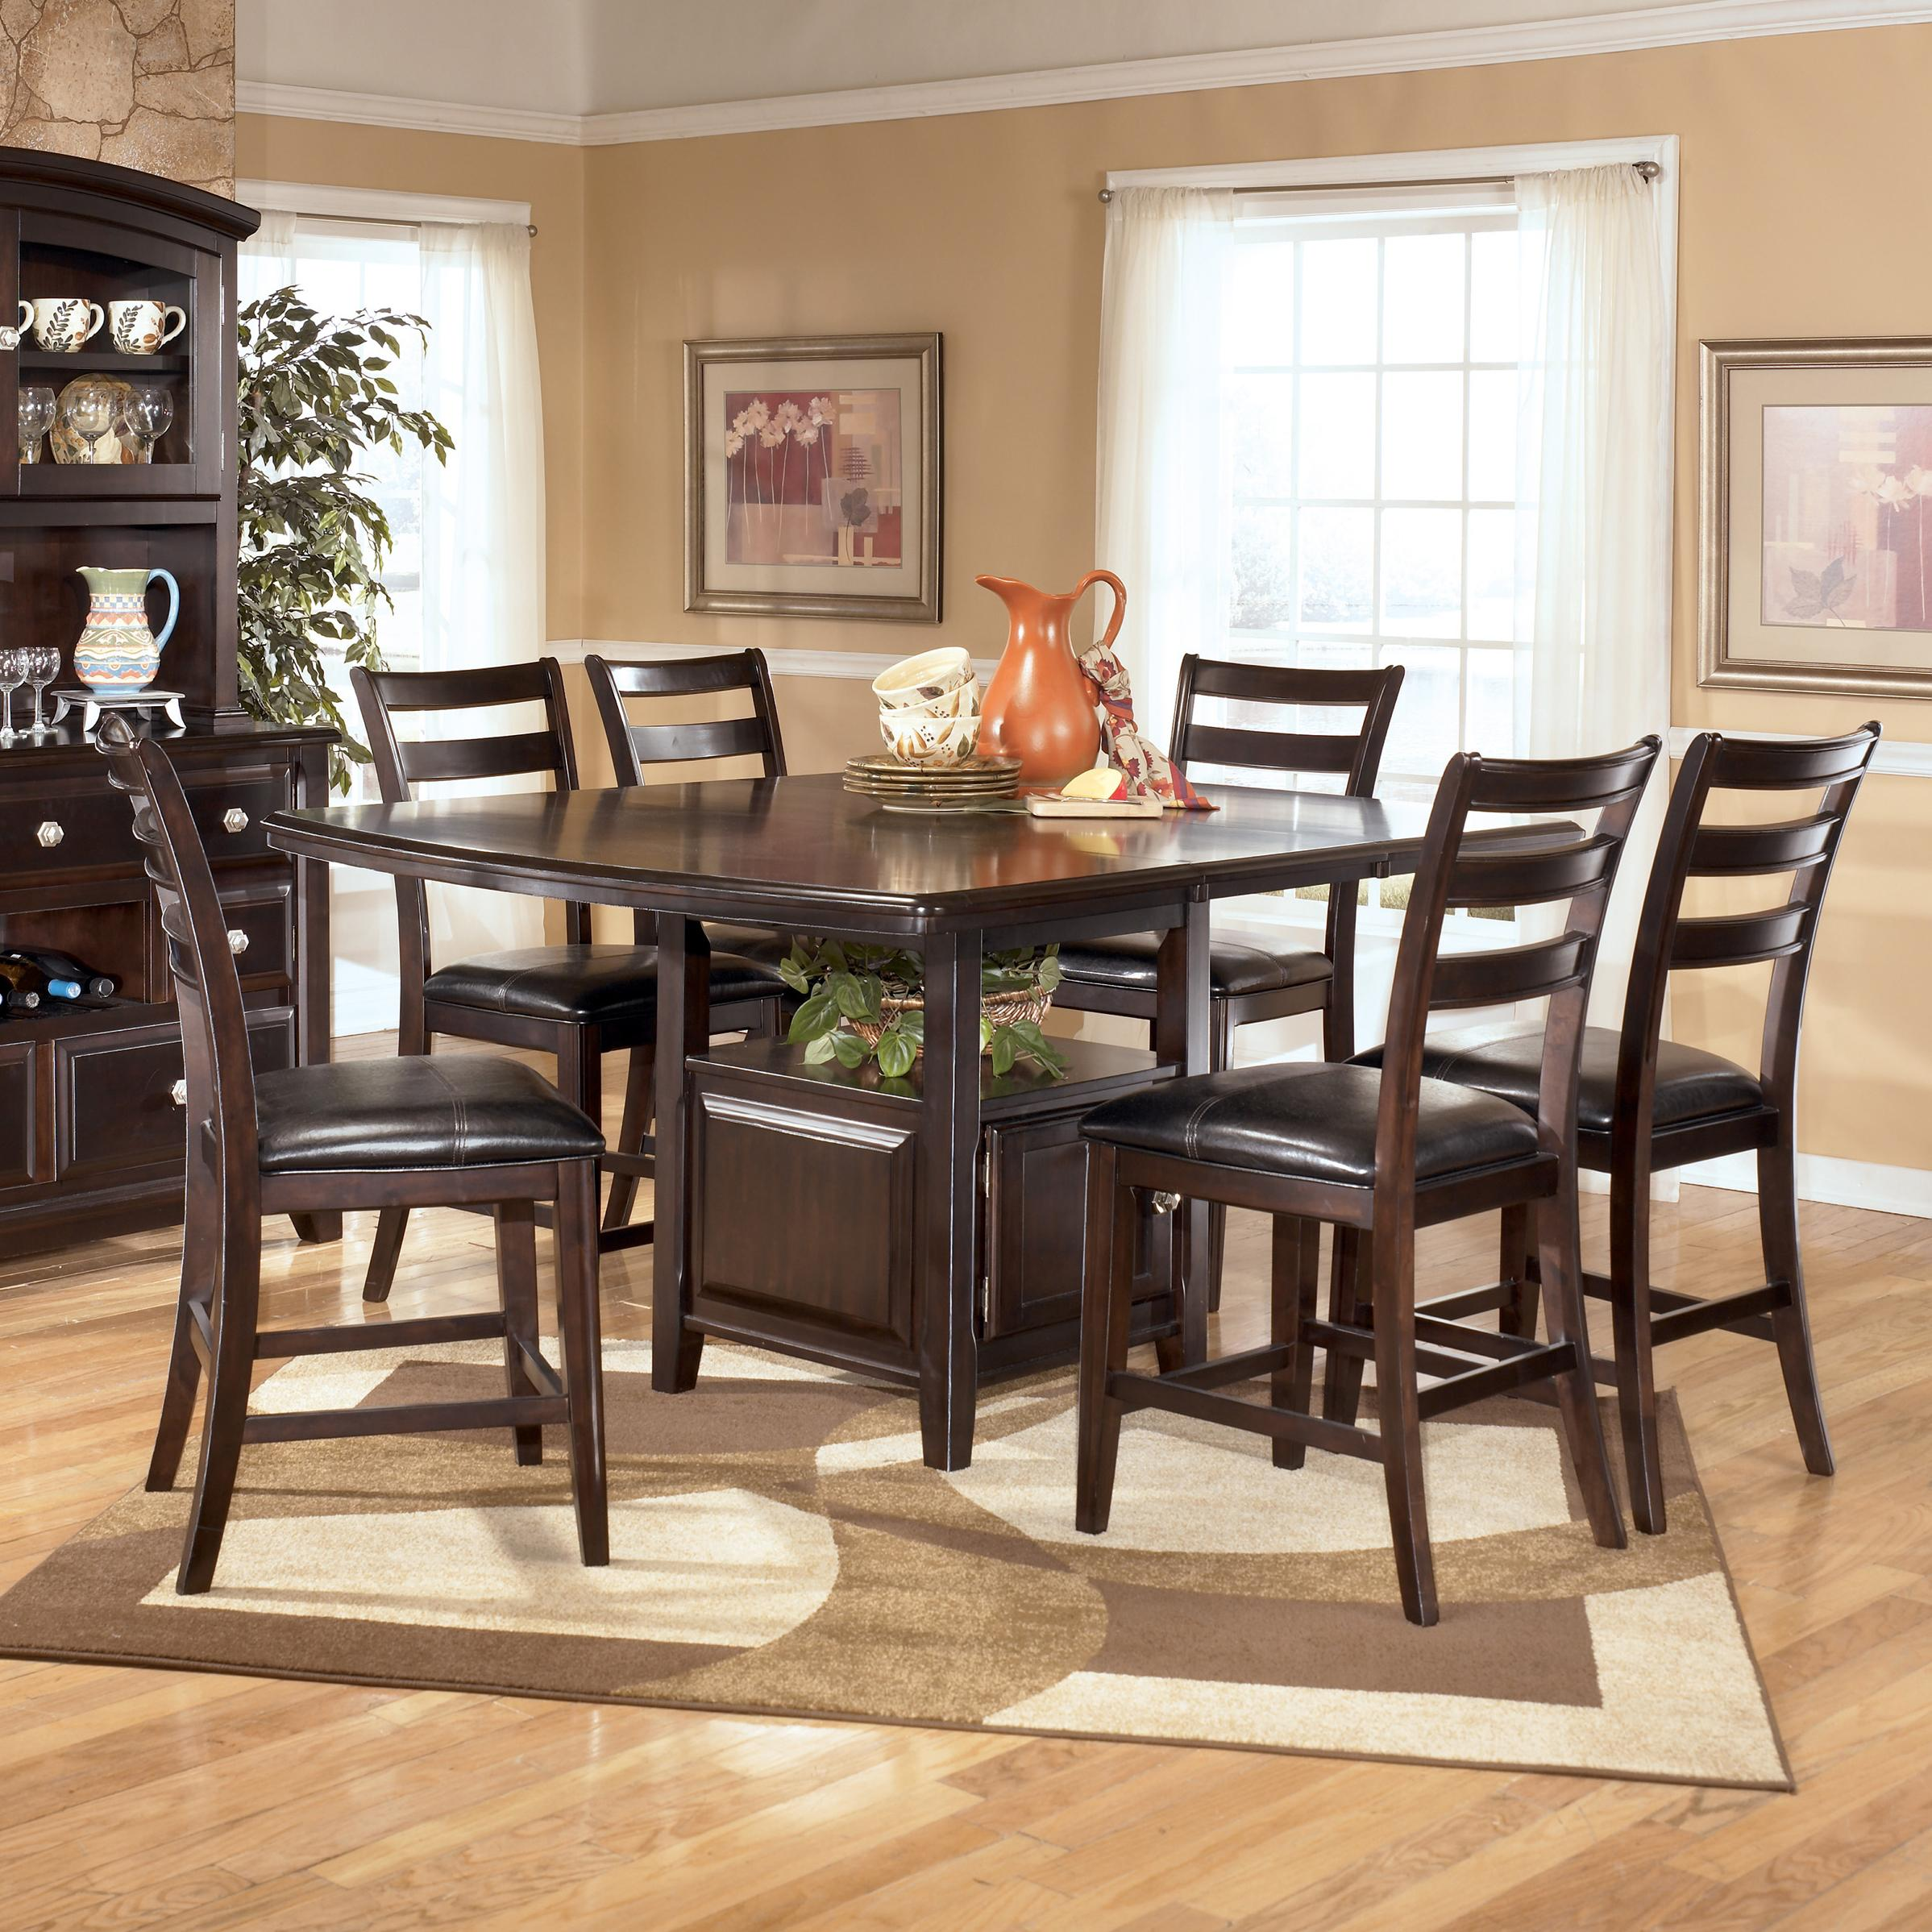 Signature Design by Ashley Ridgley 7 Piece Counter Height Table and Barstools Set - AHFA - Pub Table and Stool Set Dealer Locator & Signature Design by Ashley Ridgley 7 Piece Counter Height Table and ...